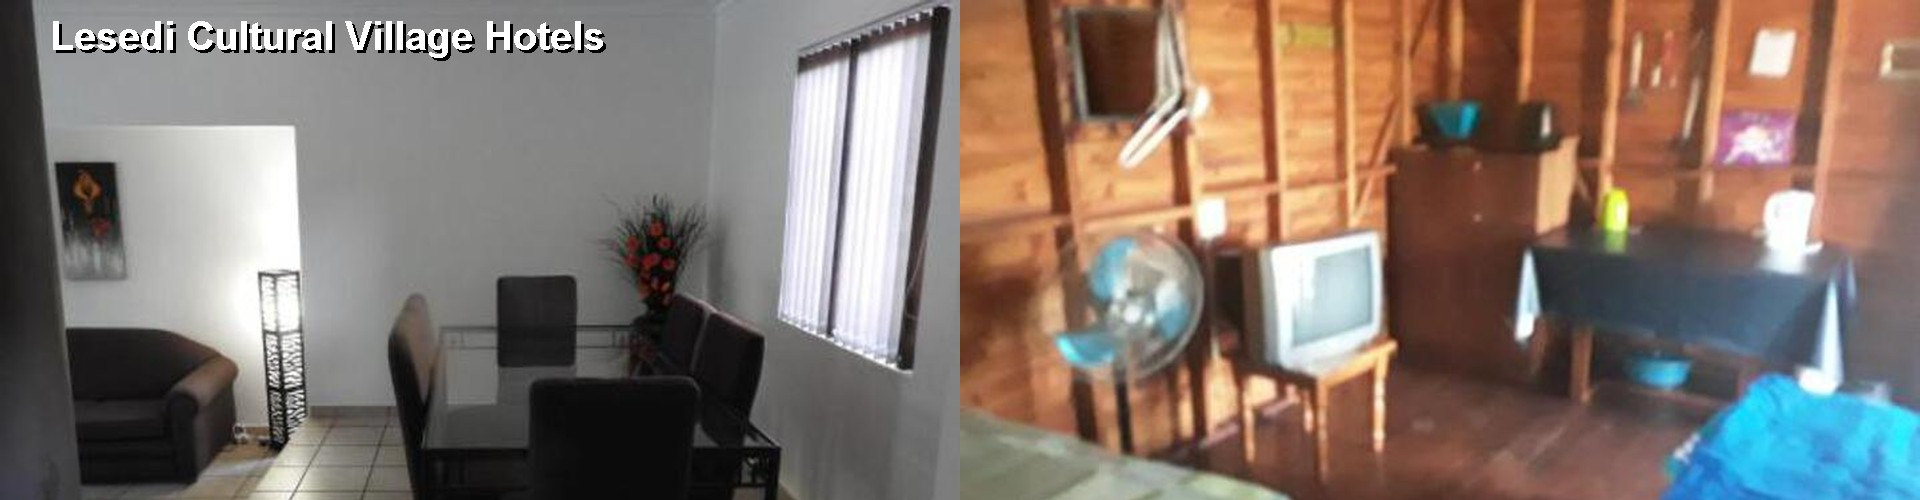 5 Best Hotels near Lesedi Cultural Village